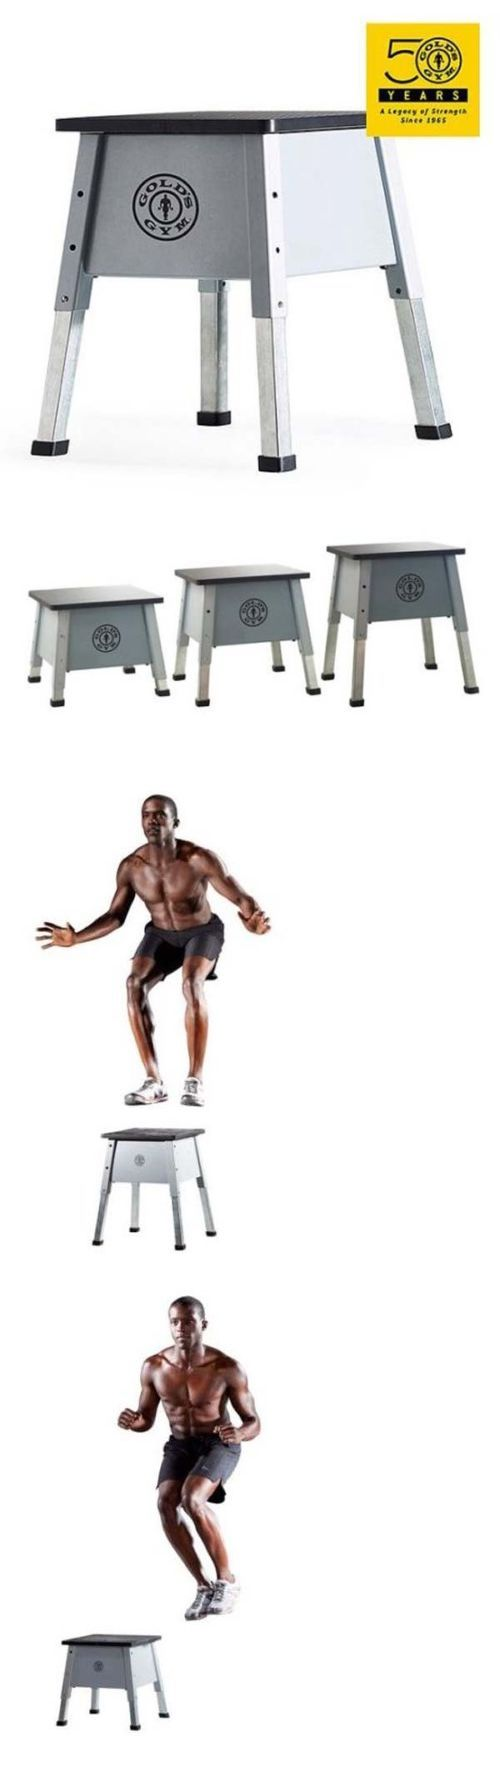 Step Riser Sets 44080: Golds Gym Extreme Adjustable Plyometric Steel Jump Box Step Riser Equipment New -> BUY IT NOW ONLY: $60.95 on eBay!